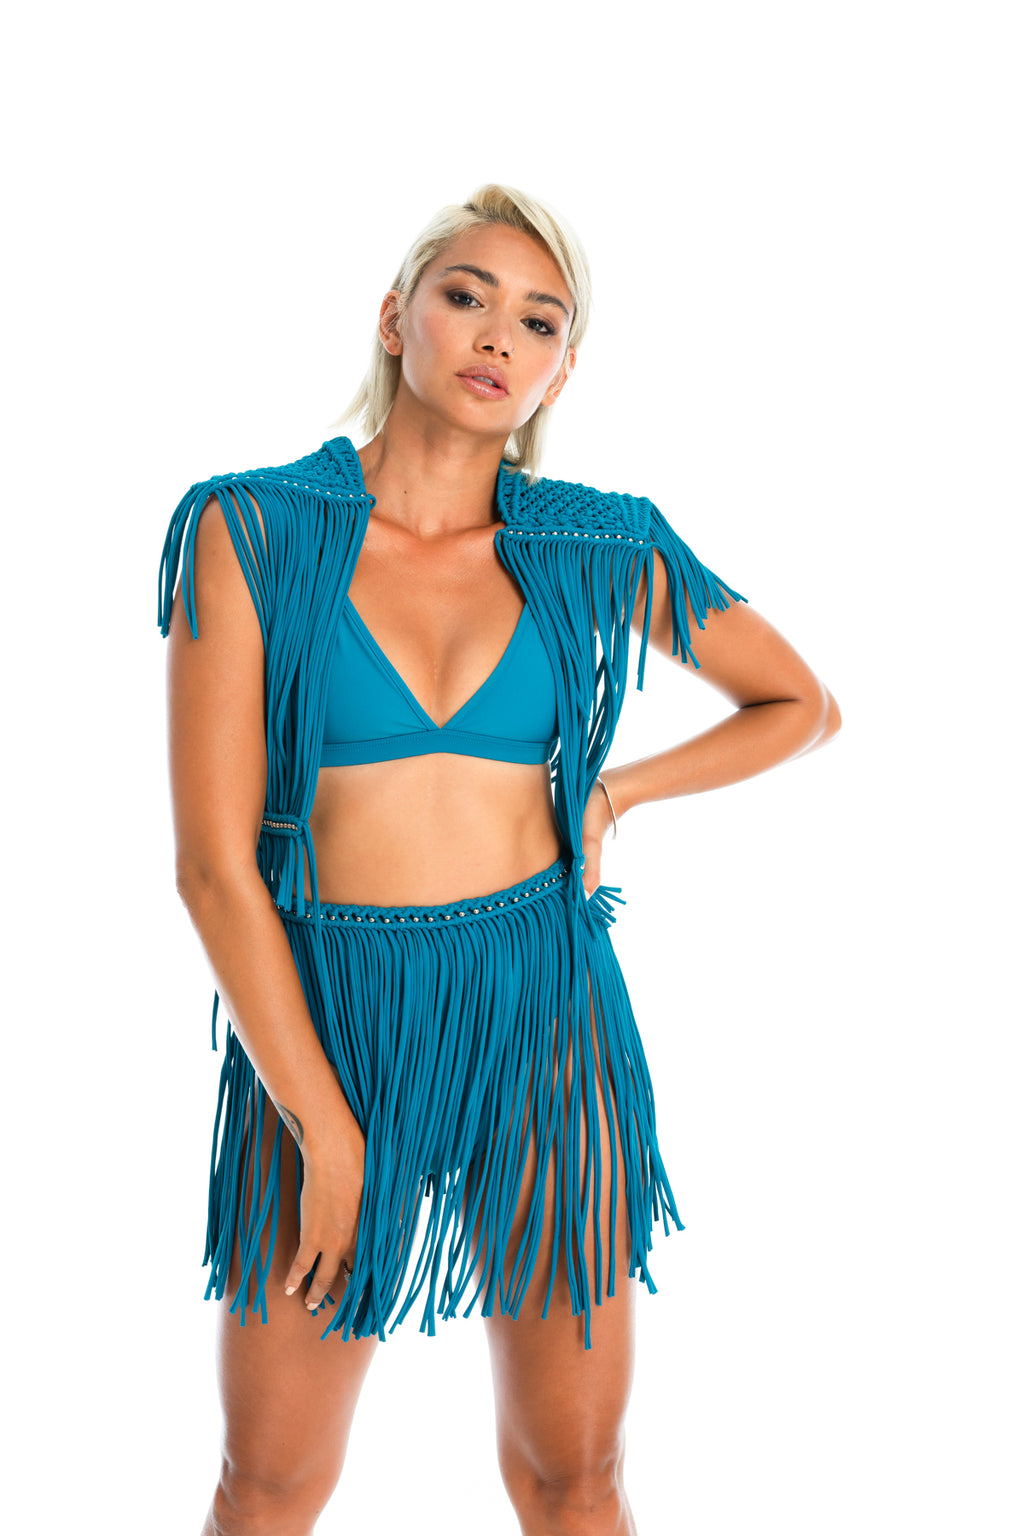 Teal festival macrame fringe skirt, sustainable burning man and rave wear